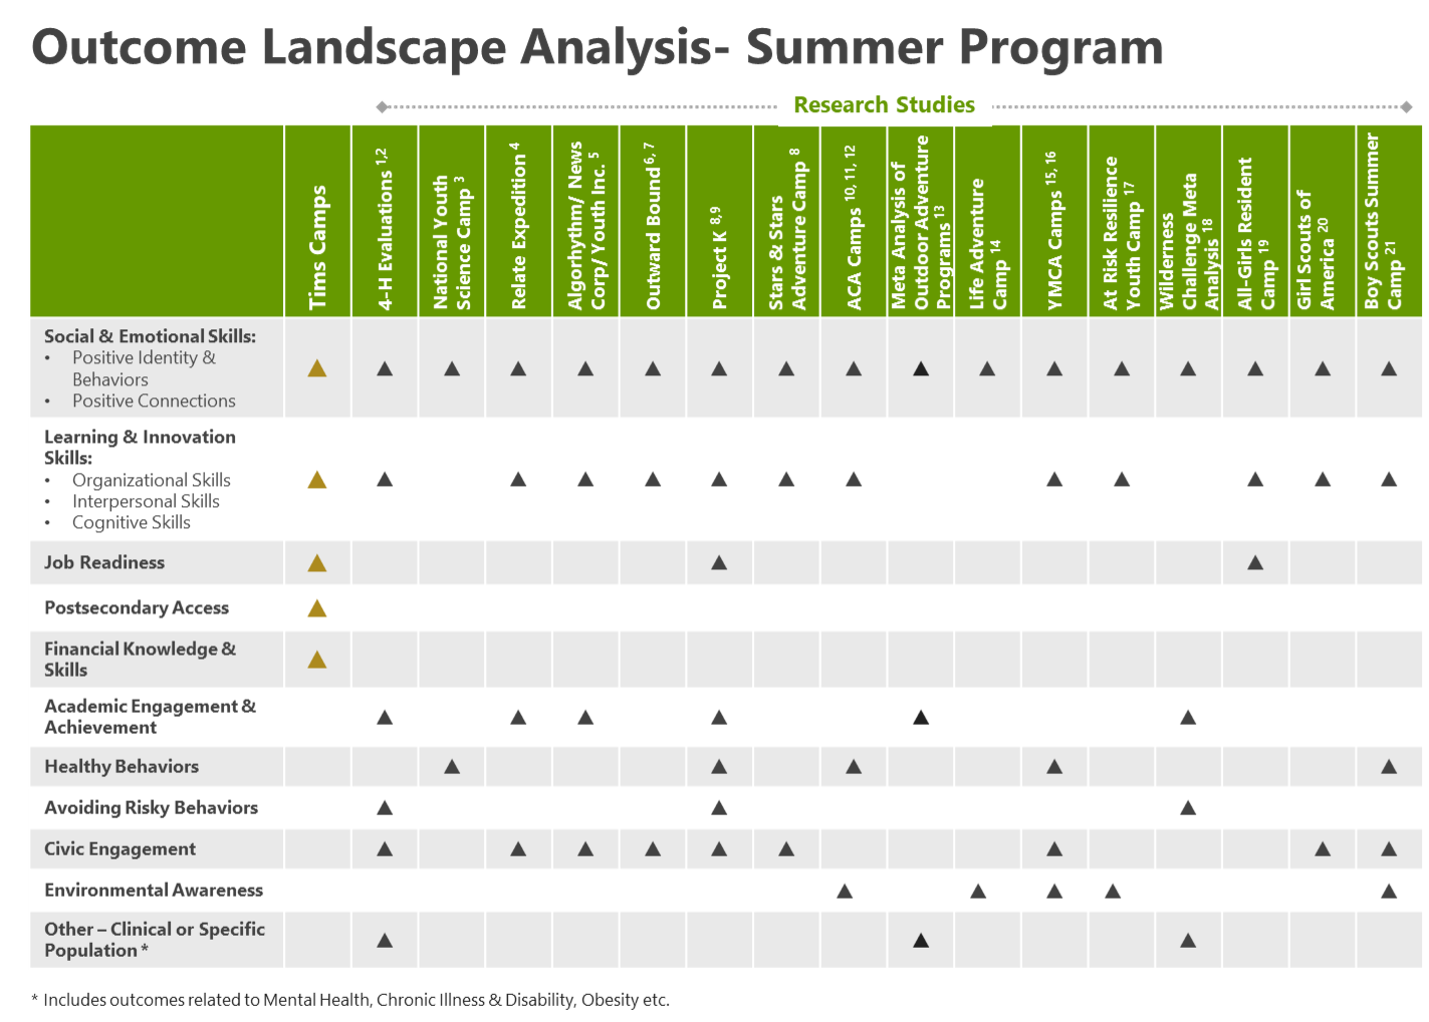 Outcome Landscape Analysis Summer